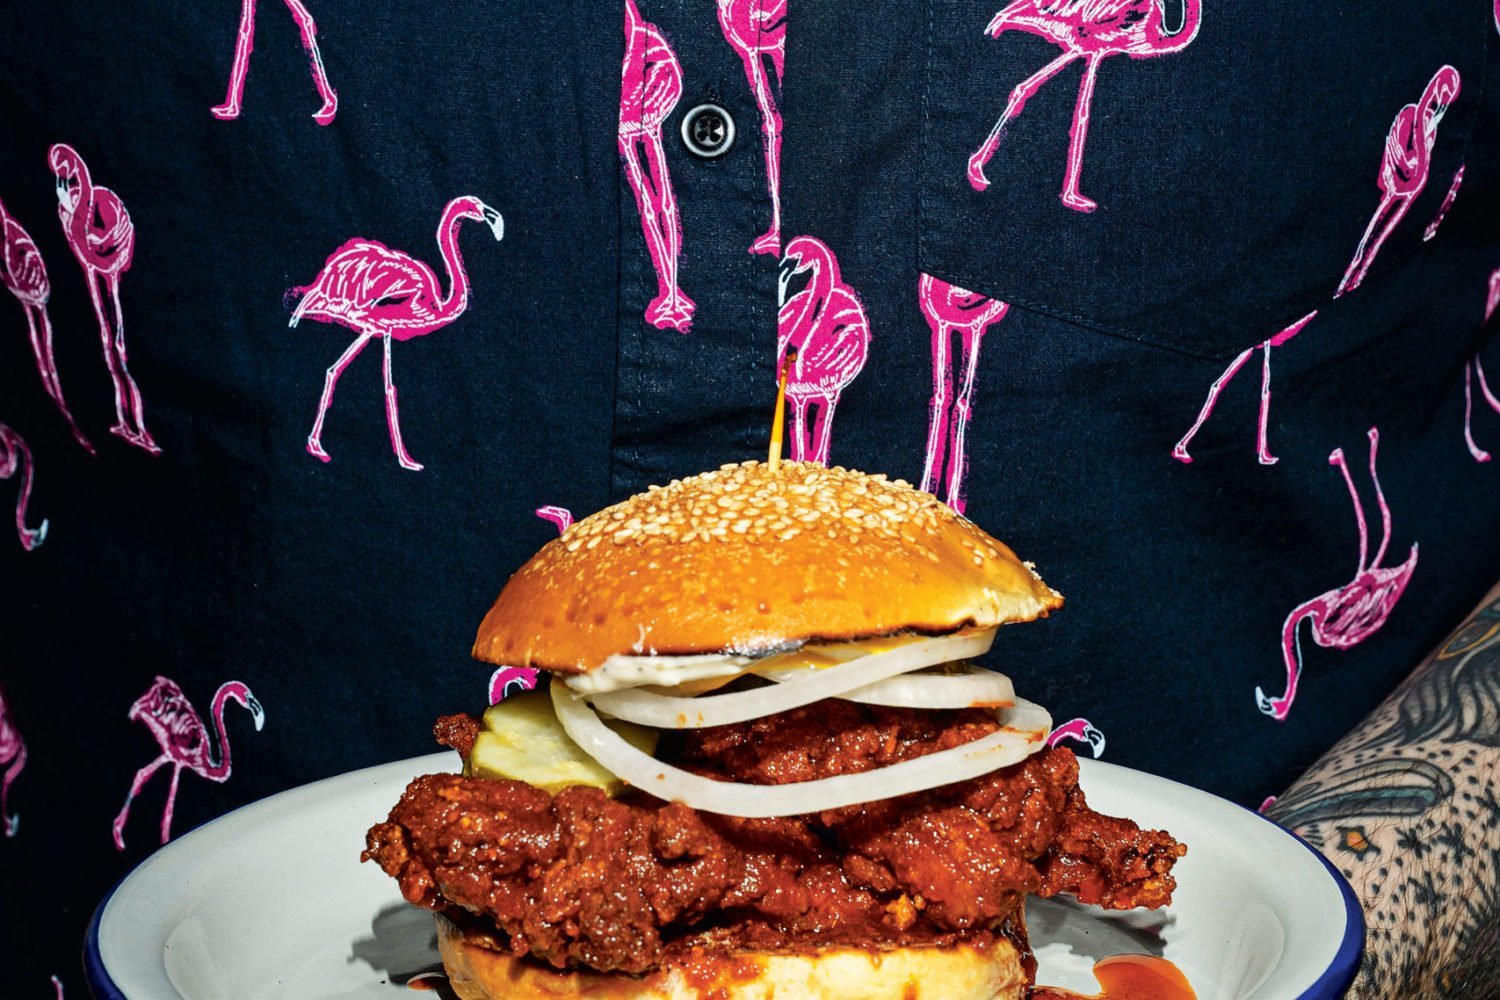 Fried chicken sandwich at Lucky Buns. Photograph by Scott Suchman.